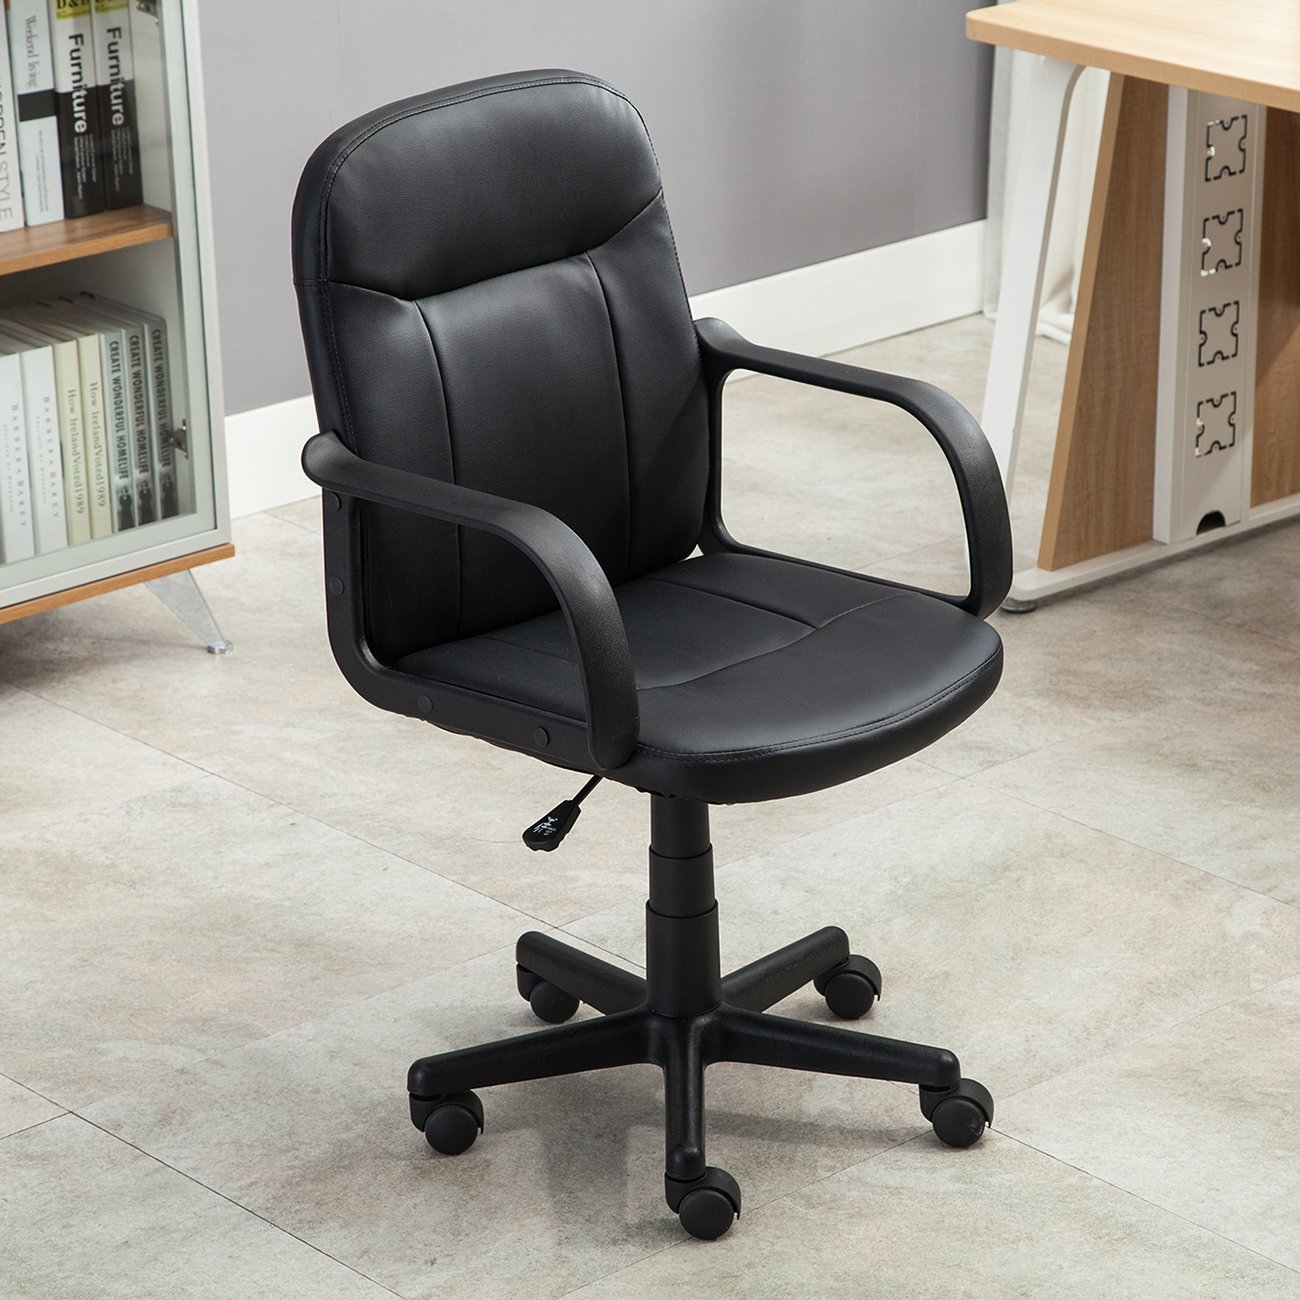 executive products racing leather speed promech chair bucket italian office shadow alcantara chairs